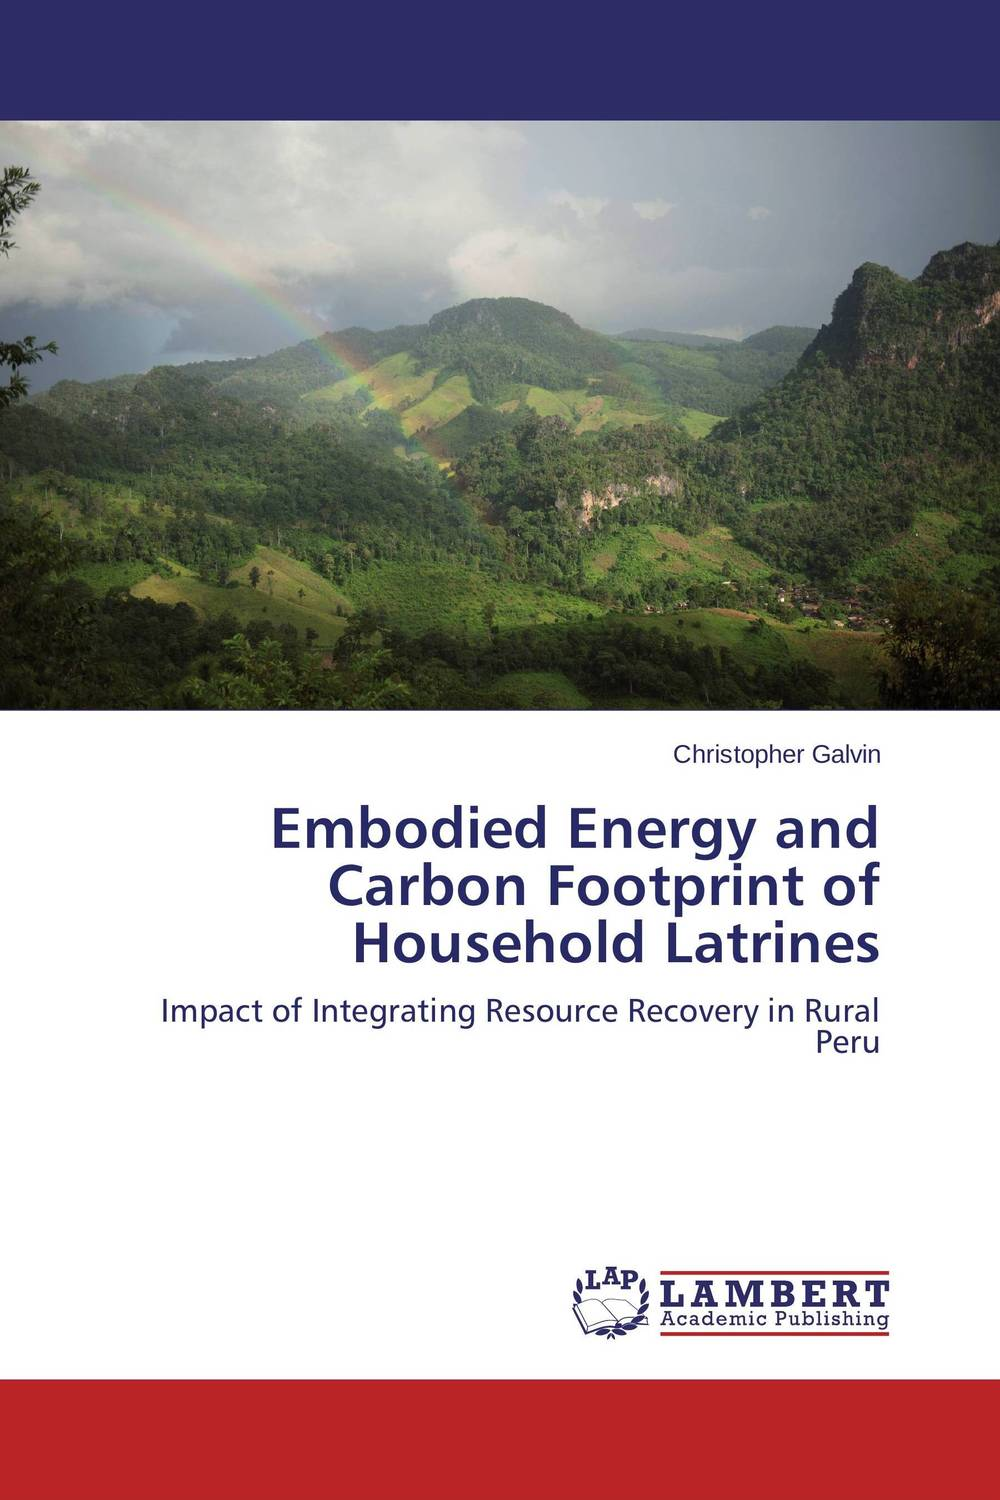 Embodied Energy and Carbon Footprint of Household Latrines